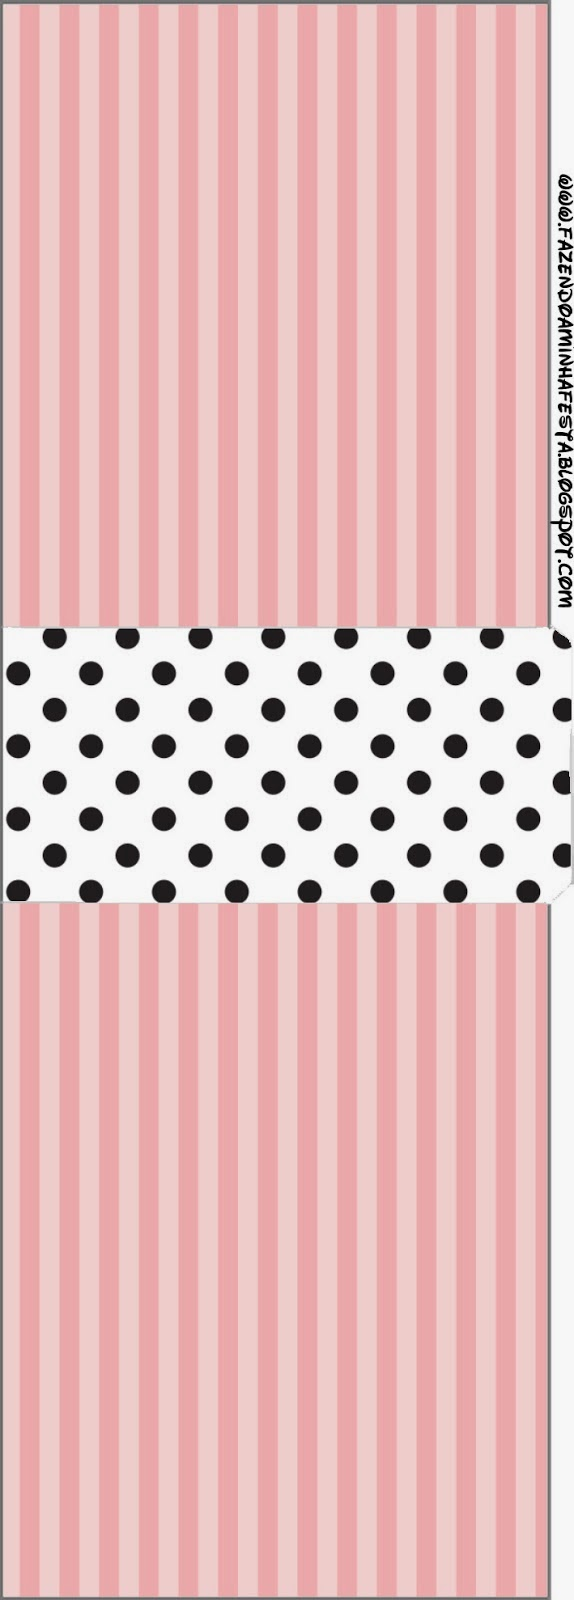 Pink, White and Black Stripes and Polka Dots: Free ...